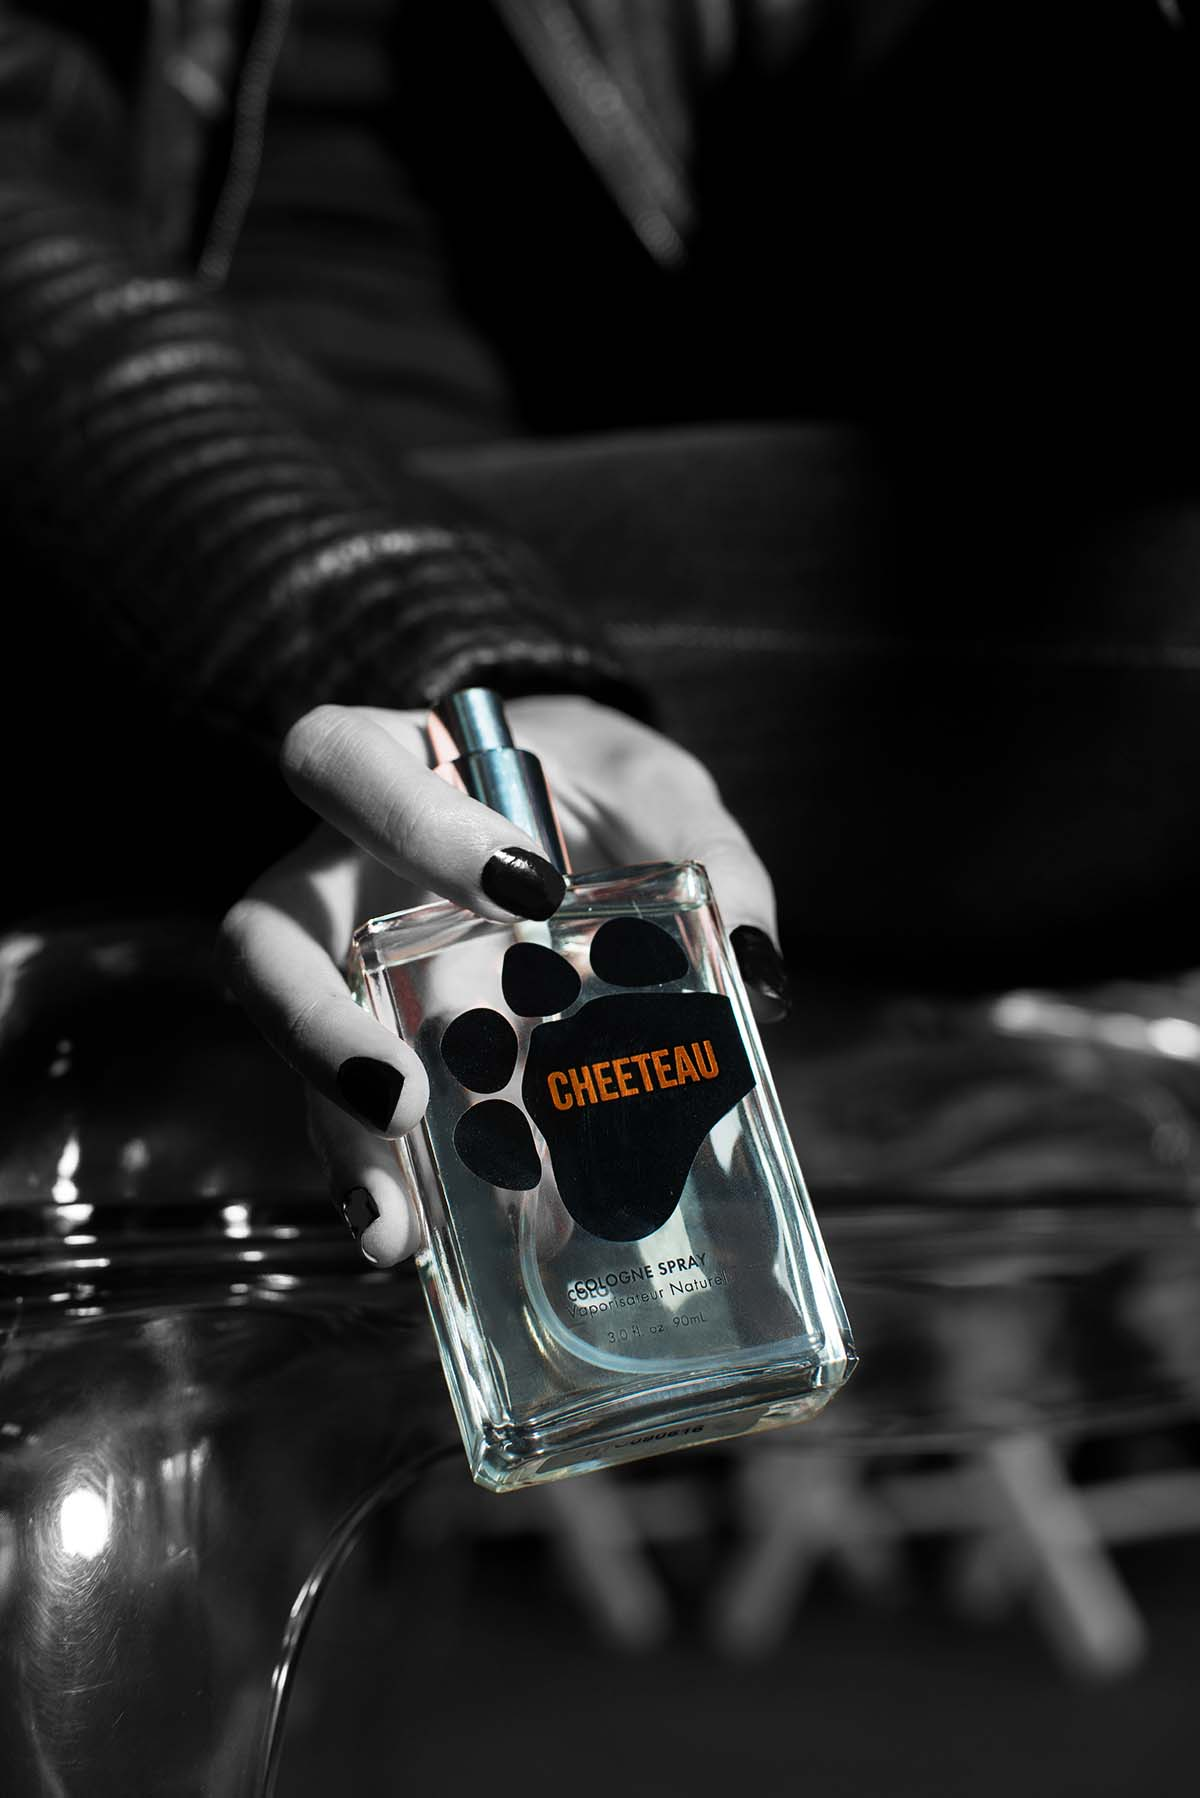 Crafted from hand-extracted cheese oils, this ravishing scent embodies the irrepressible aroma of Cheetos and lures the most remarkable admirers. Following its wildly successful limited-time launch in April 2014, Cheeteau is back for those clamoring to get their paws on the one-of-a-kind fragrance. $18.99